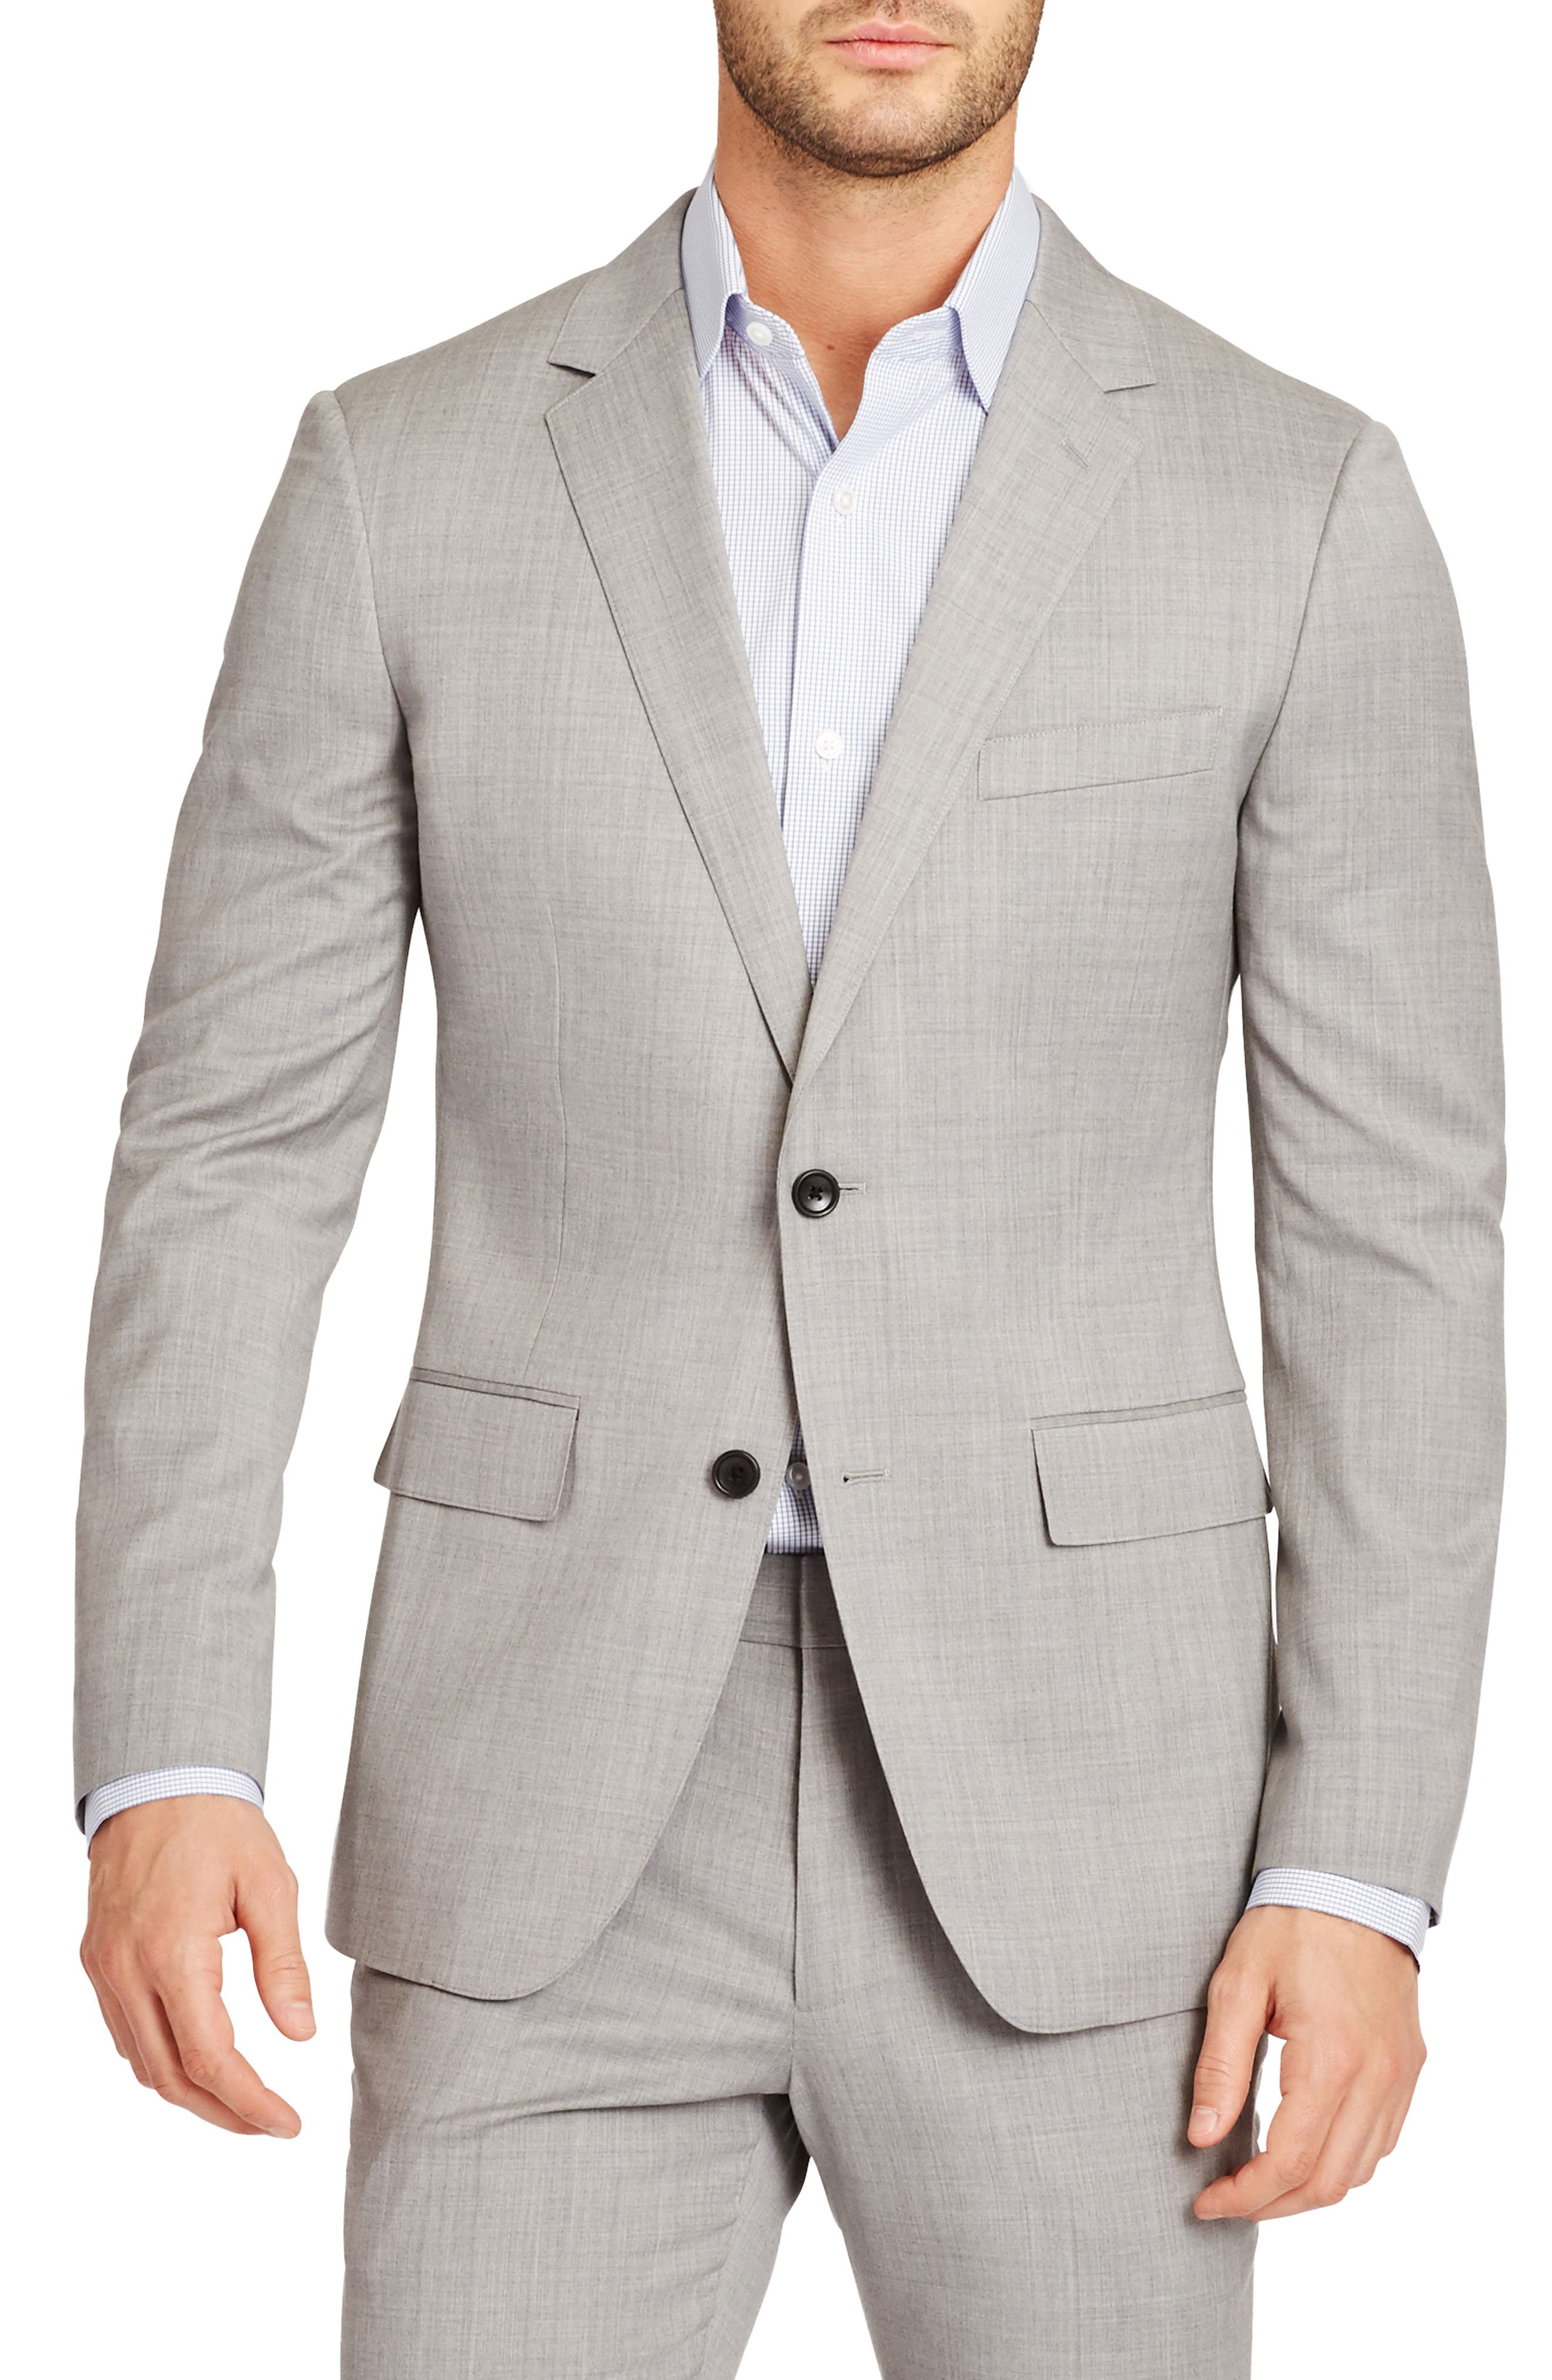 Jetsetter Trim Fit Stretch Wool Blazer,                         Main,                         color, Light Grey